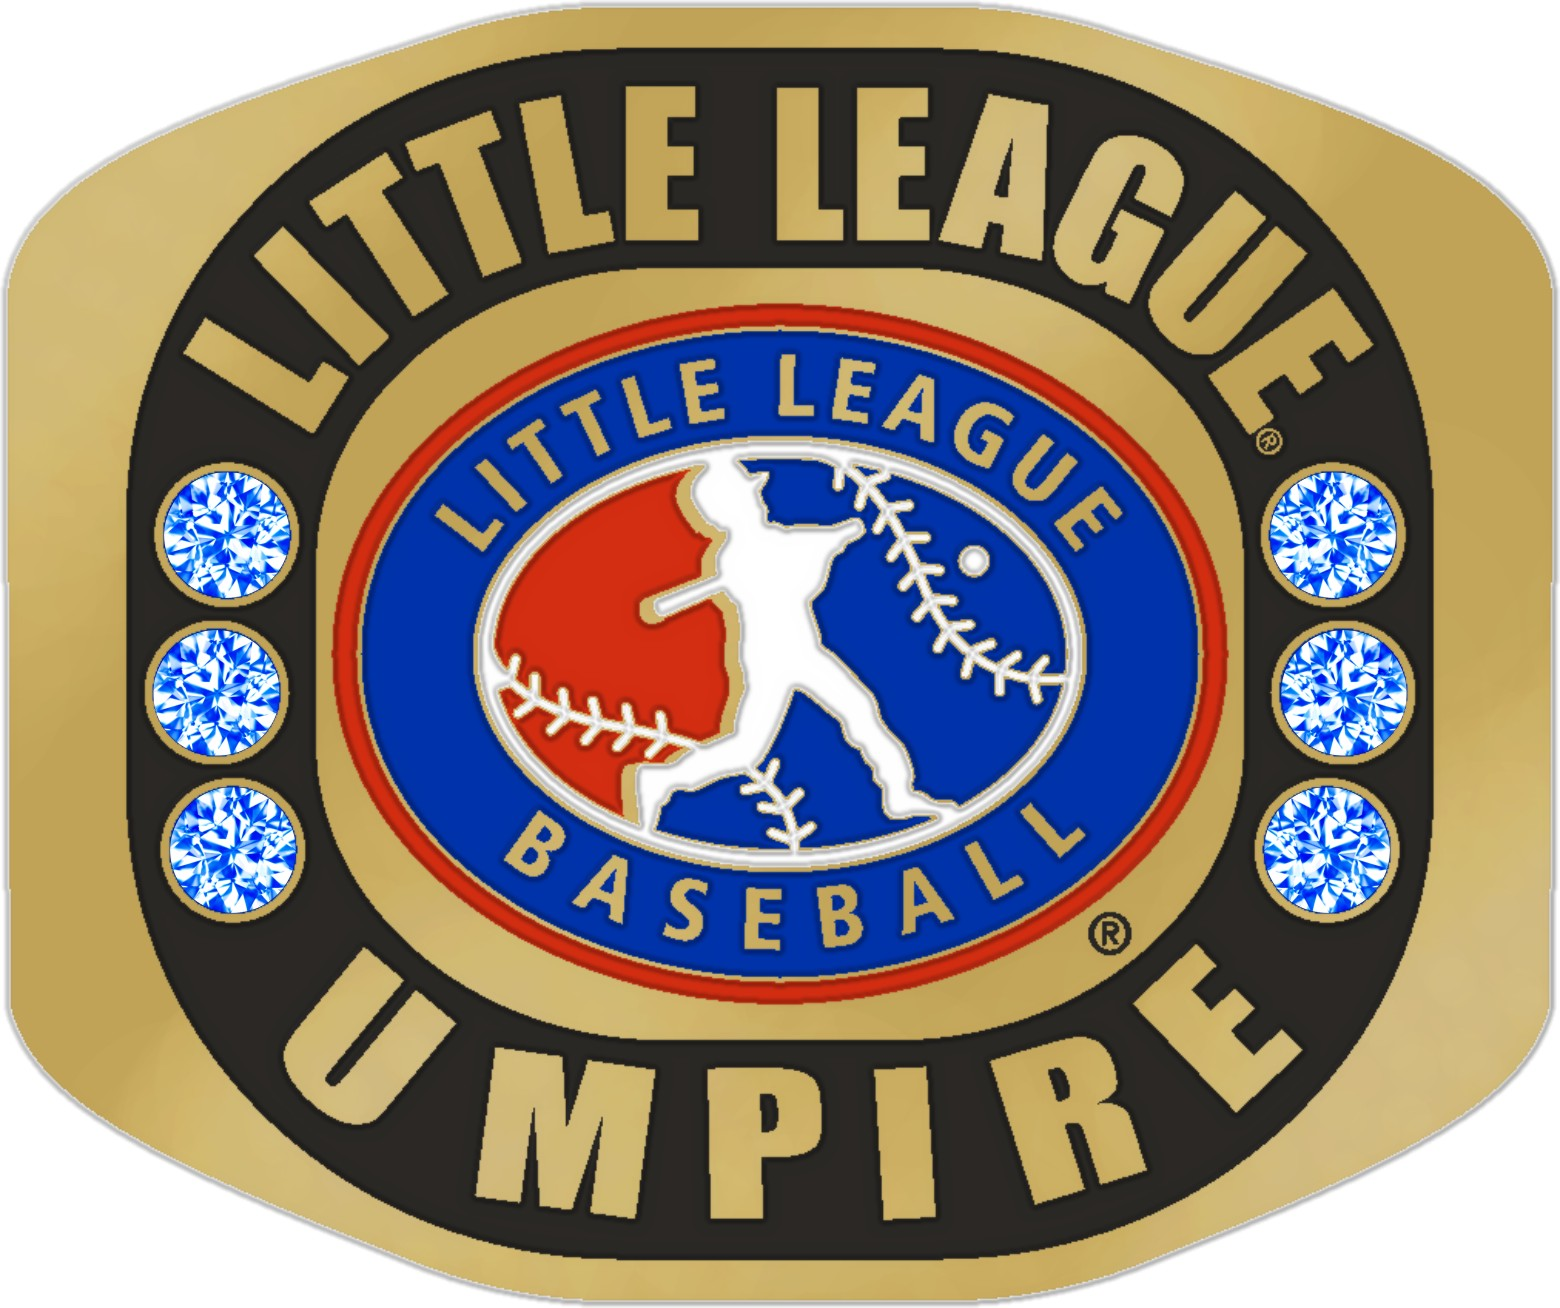 (NEW) LITTLE LEAGUE UMPIRE RING size 14